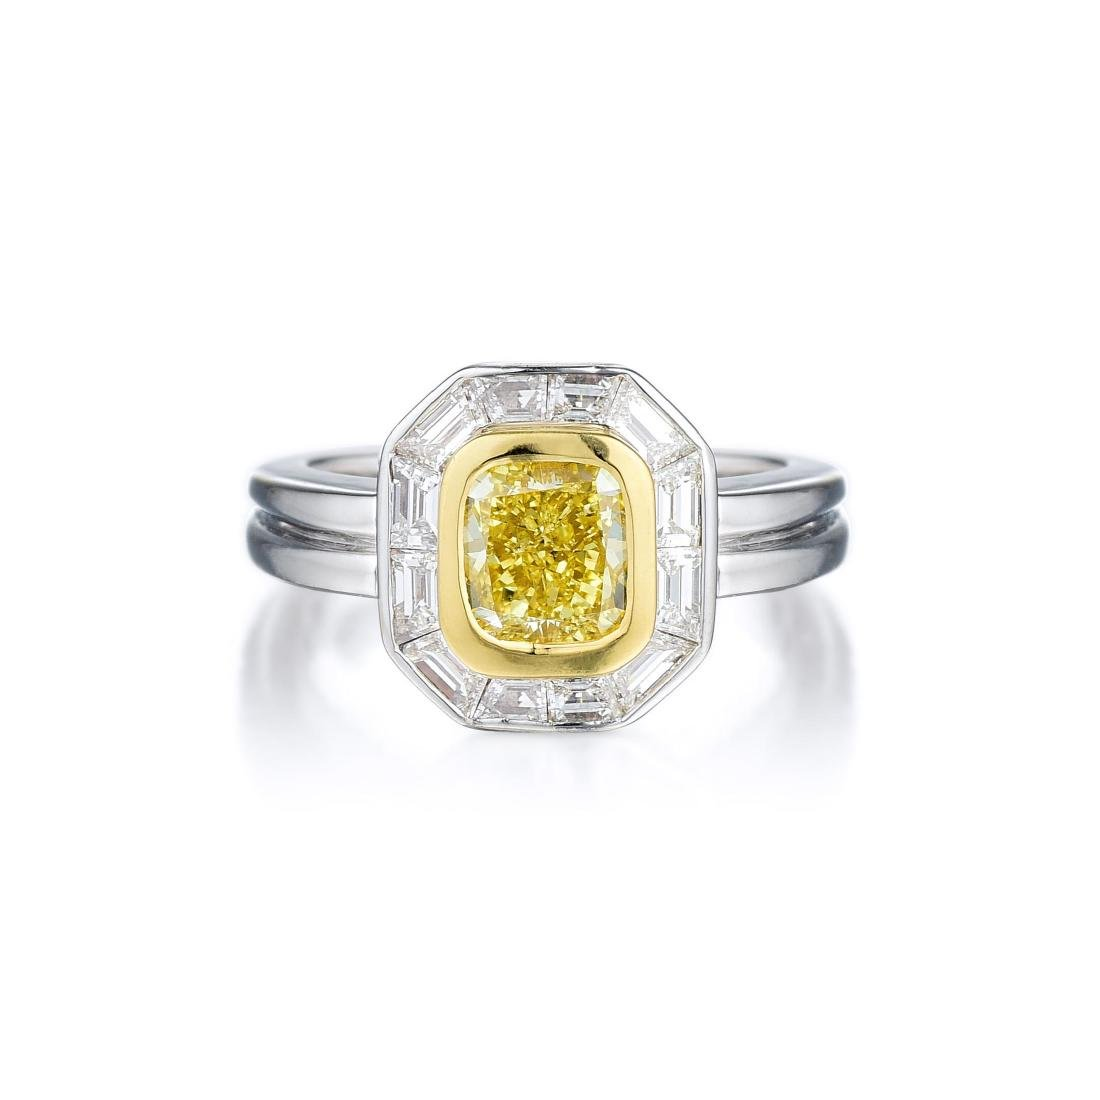 A 1.21-Carat Fancy Intense Yellow Diamond Ring